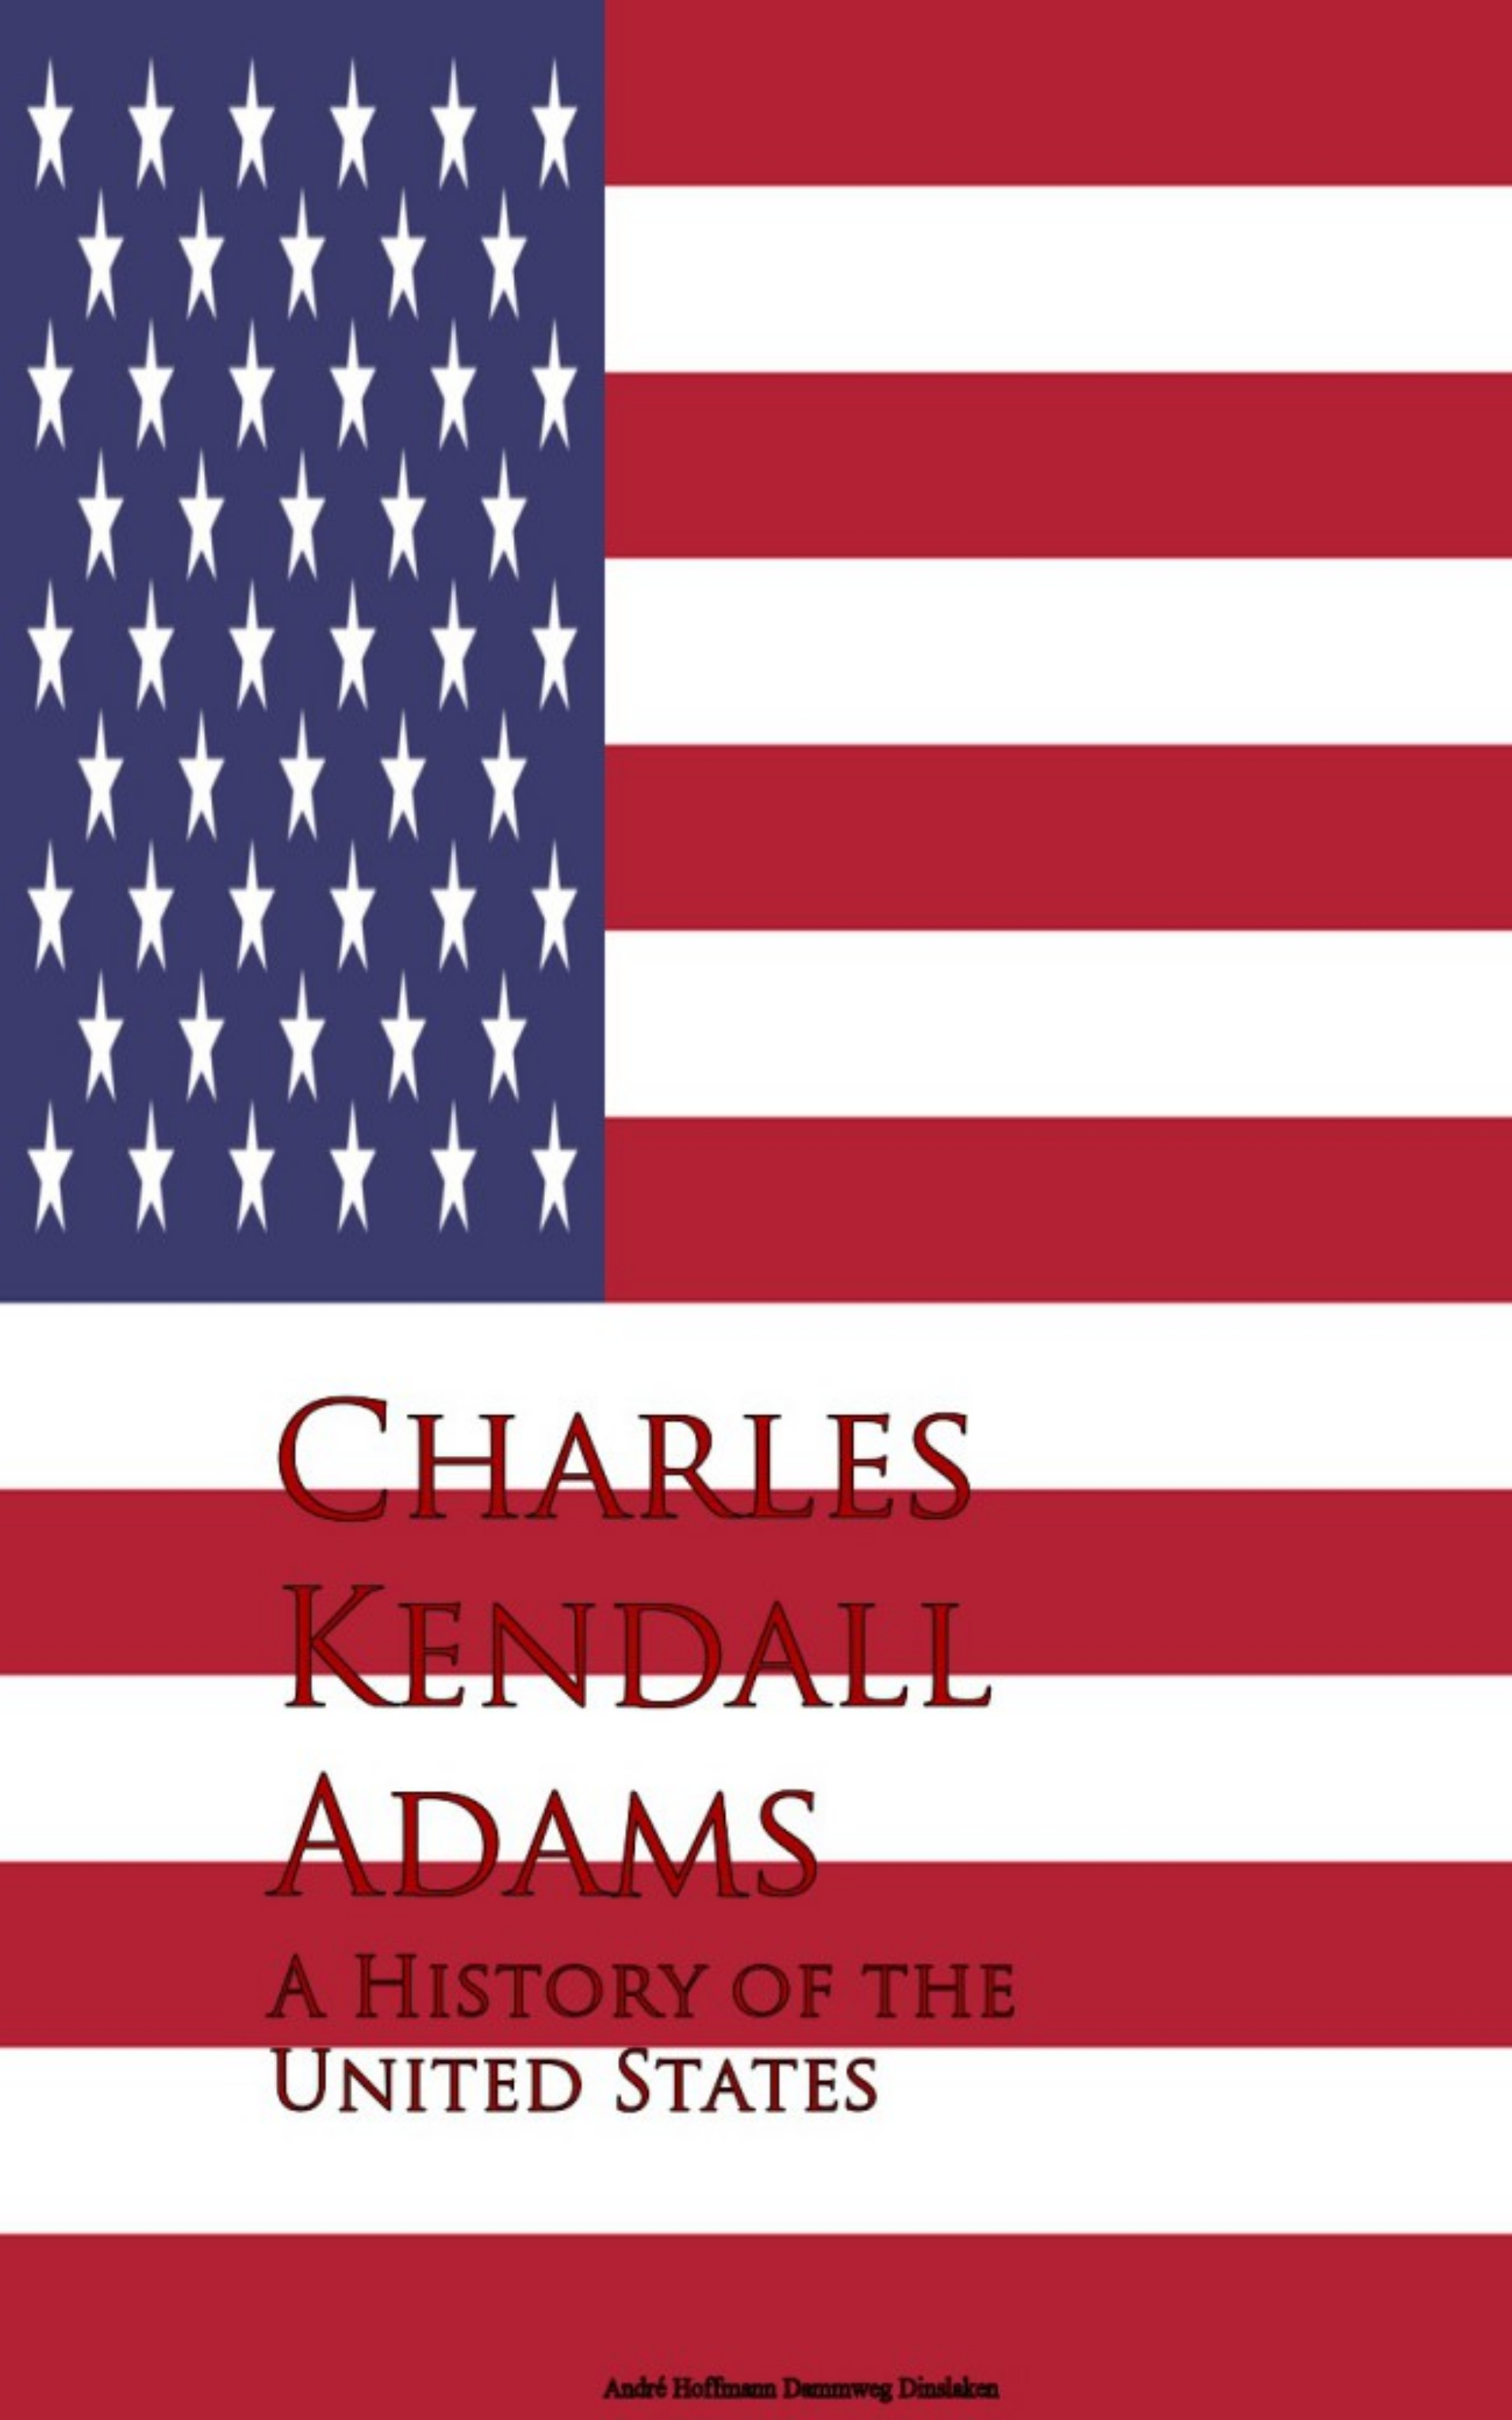 Charles Kendall Adams A History of the United States knox john jay a history of banking in the united states